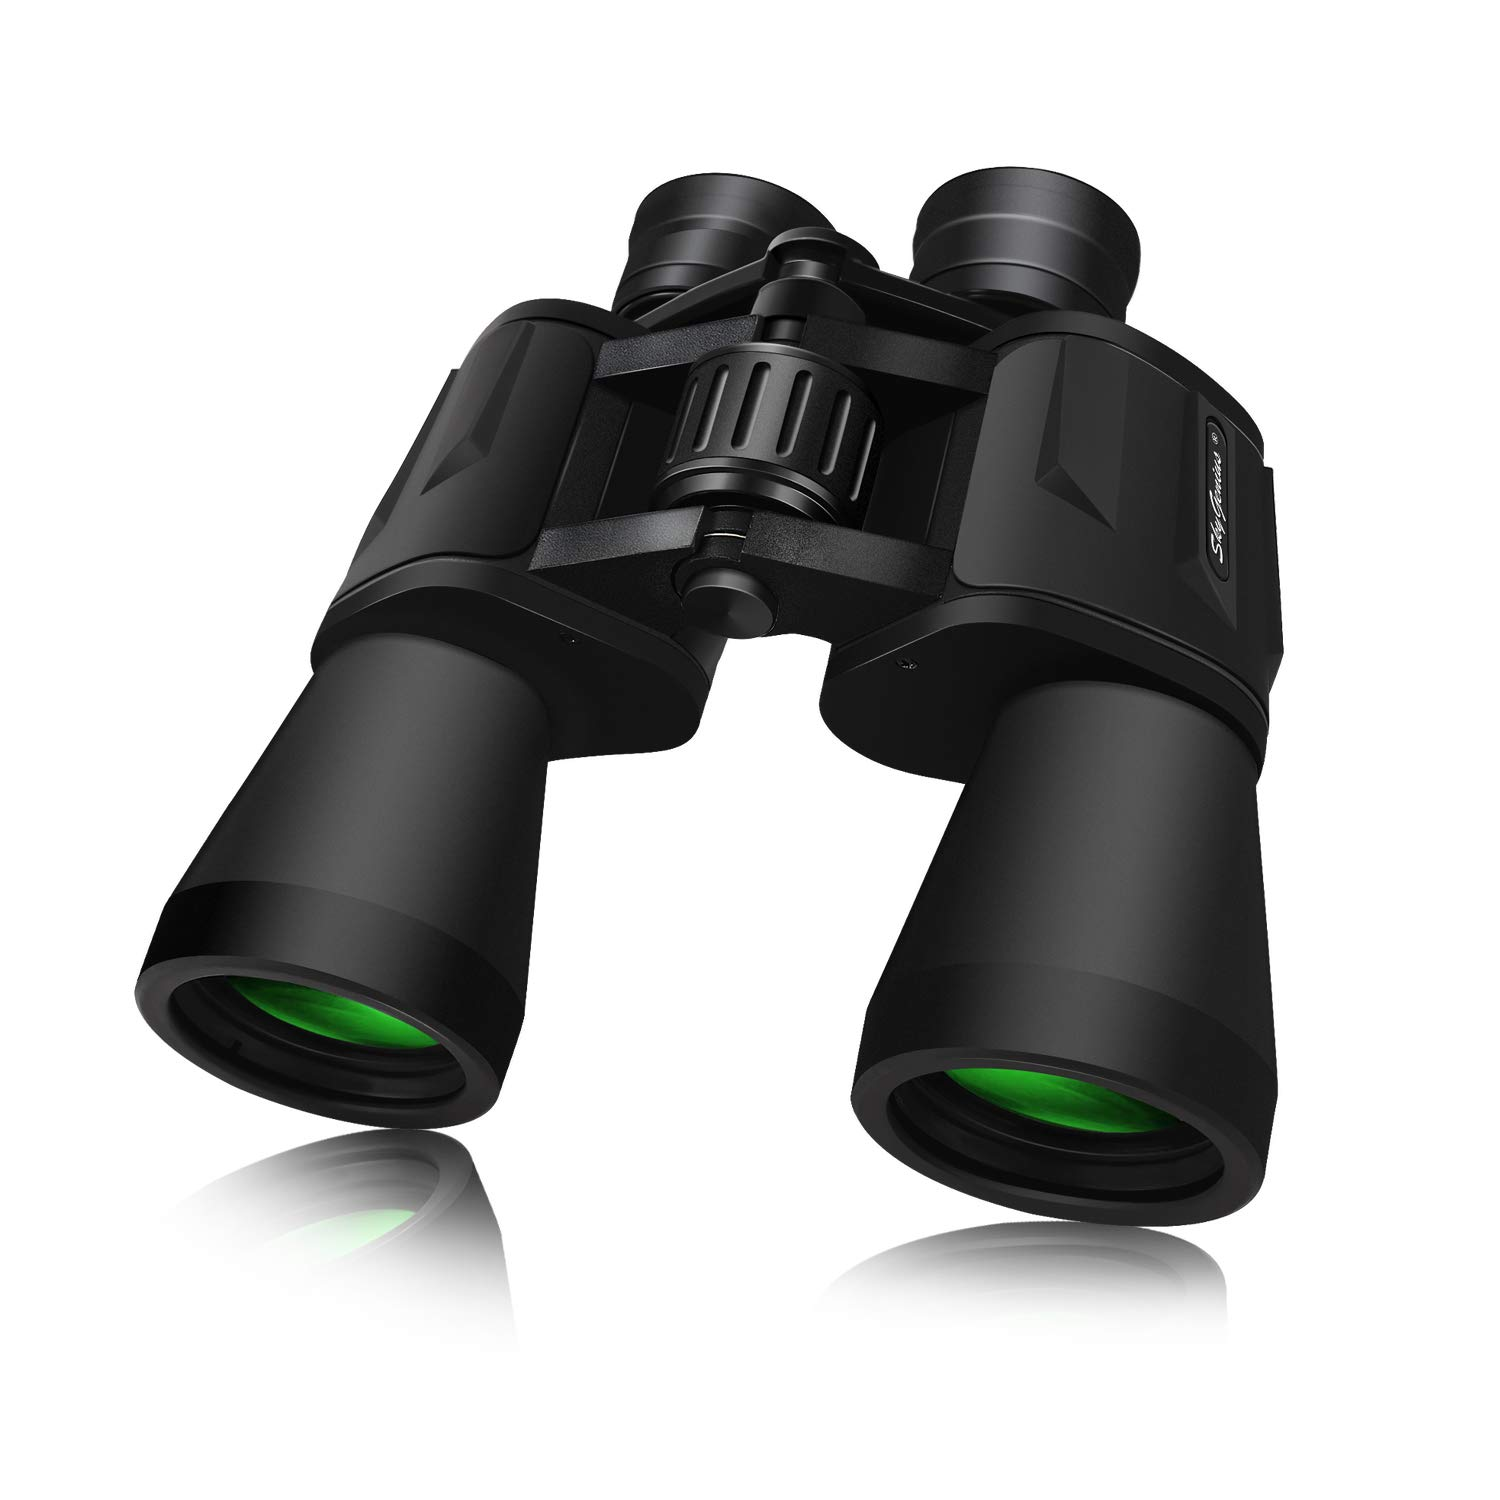 SkyGenius 10 x 50 Powerful Binoculars for Adults Durable Full-Size Clear Binoculars for Bird Watching Travel Sightseeing Hunting Wildlife Watching Outdoor Sports Games and Concerts by SkyGenius